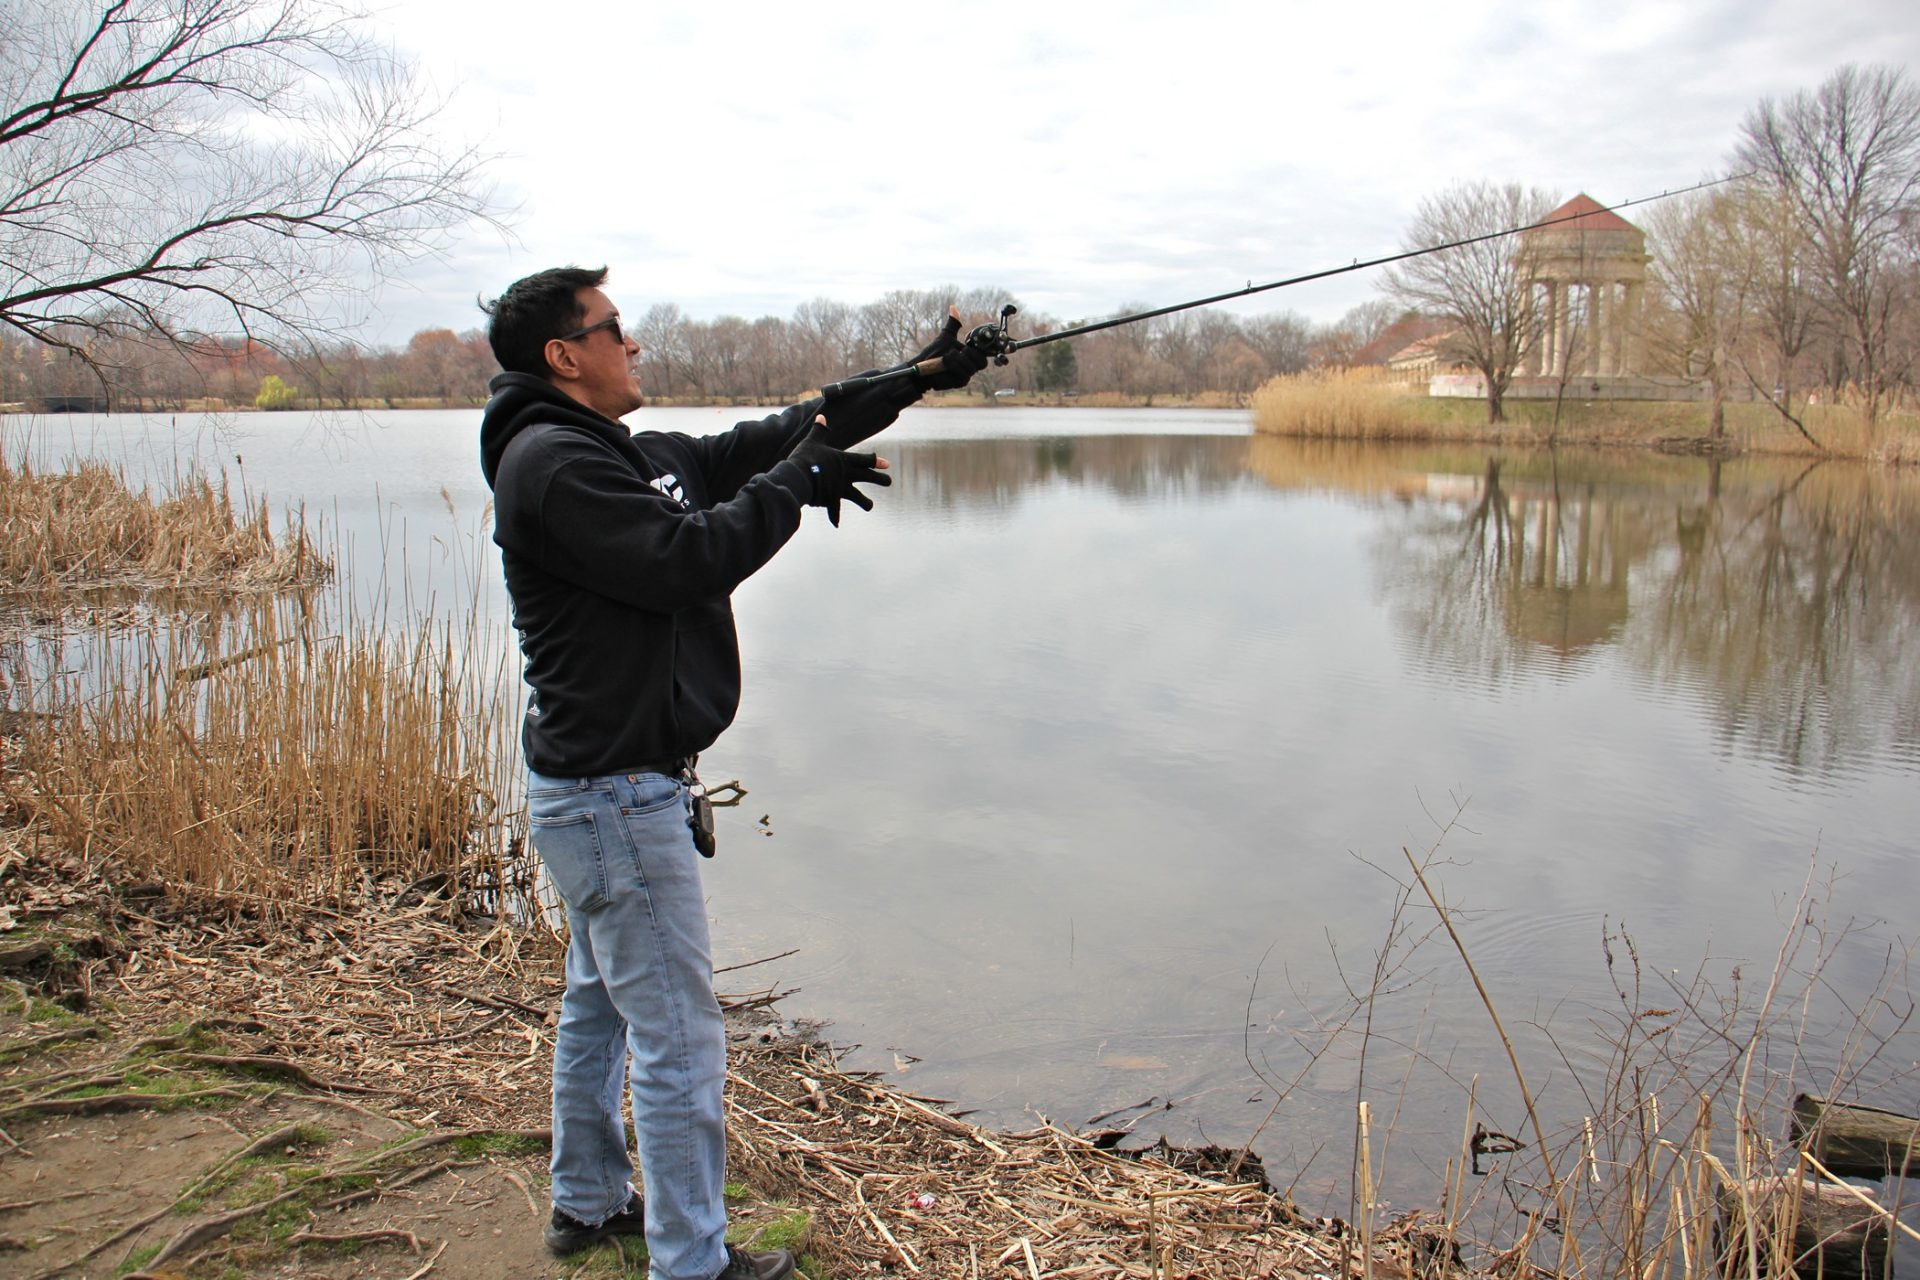 Tony Yoon fishes at Meadow Lake in FDR Park.